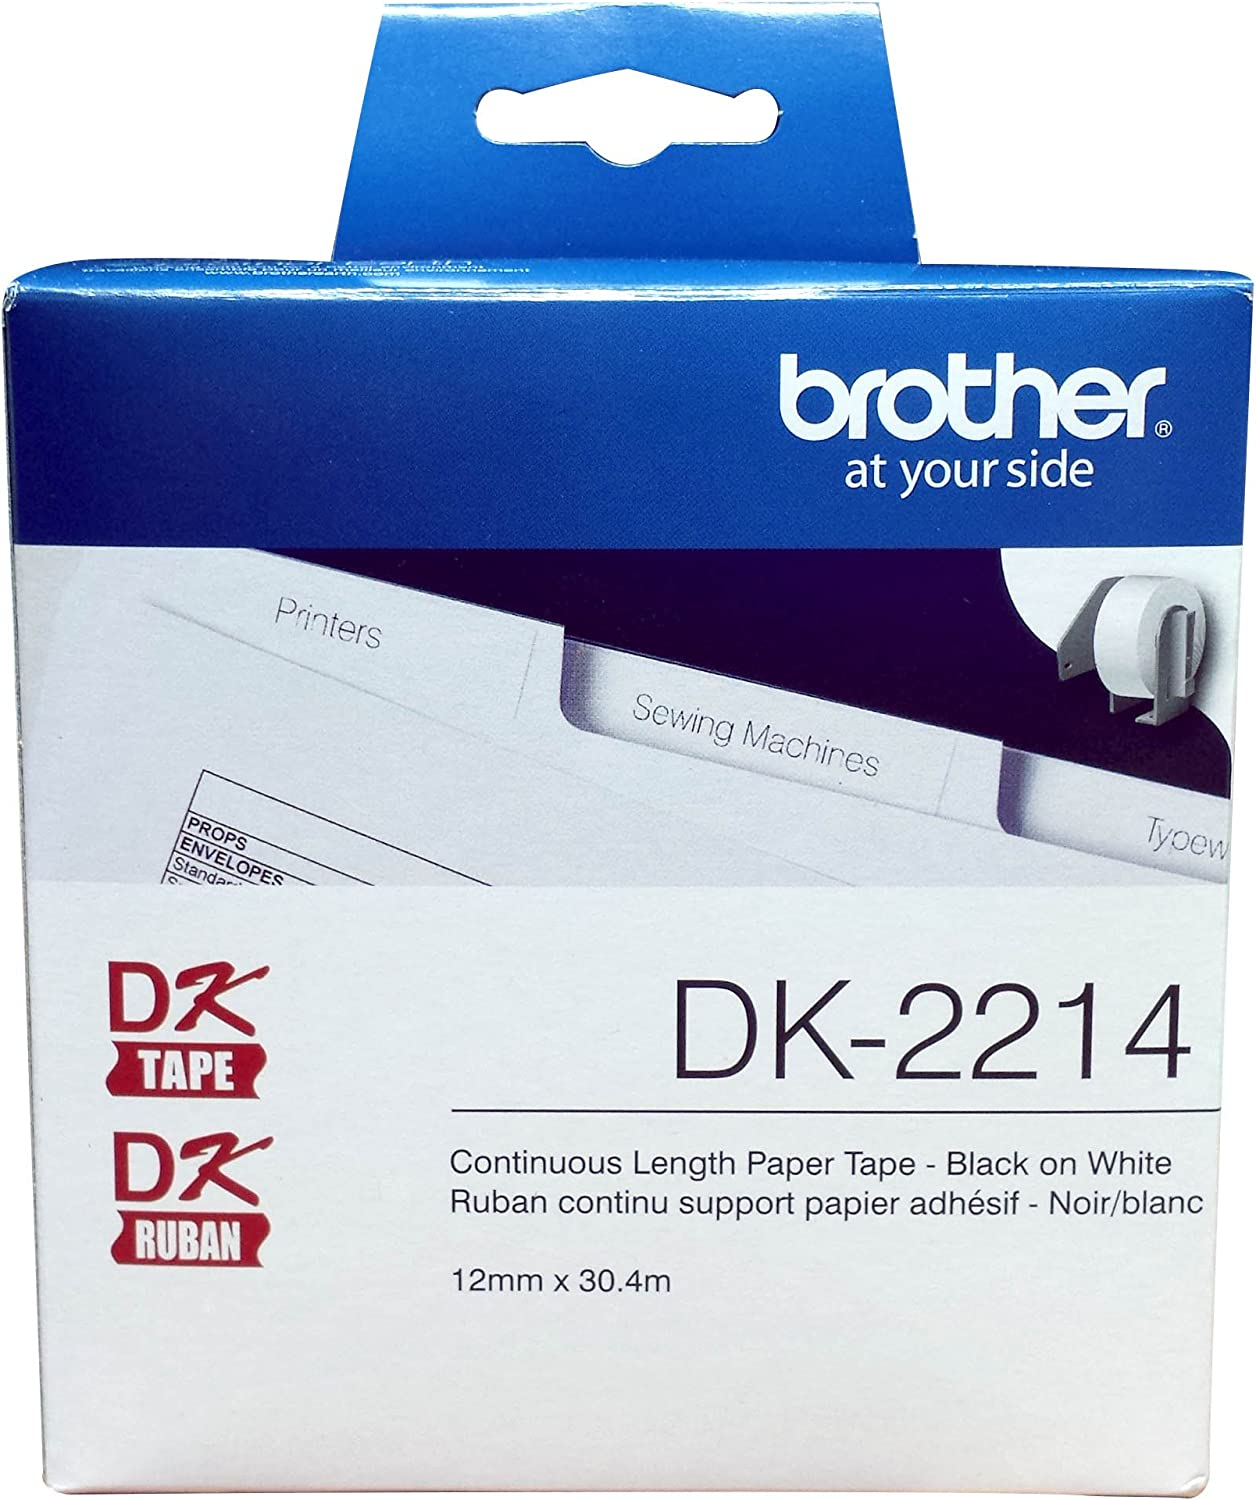 "Brother Genuine DK-2214 Continuous Length Black on White Paper Tape for Brother QL Label Printers, 0.47"" x 100' (12mm x 30.4M), 1 Roll per Box, DK2214 : Labeling Tape : Office Products"